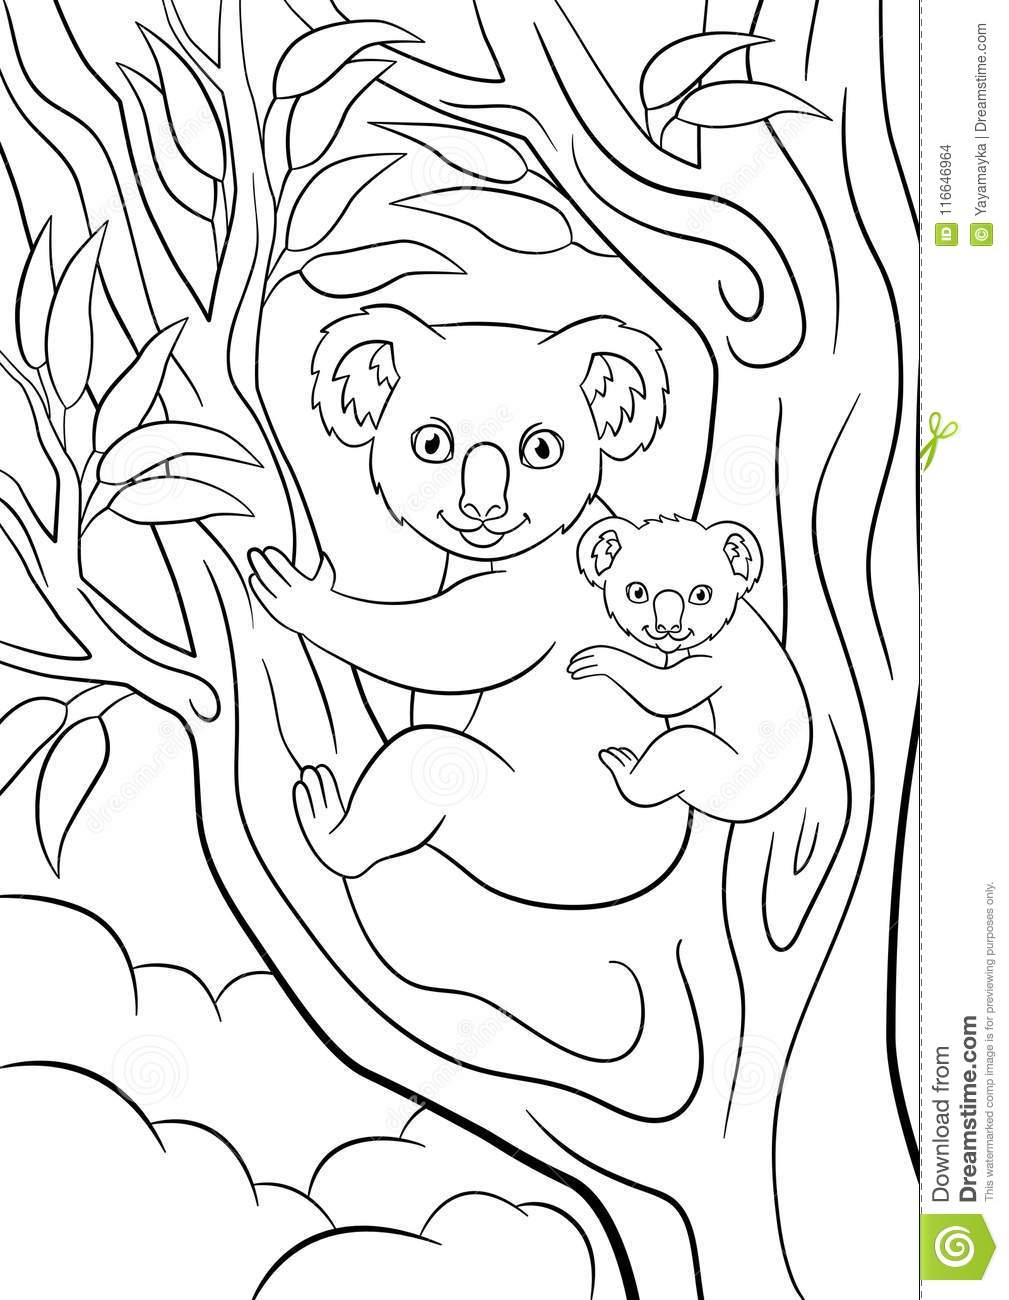 Coloring Pages Mother Koala With Her Little Cute Baby Stock Vector Illustration Of Baby Kindergarten 116646964